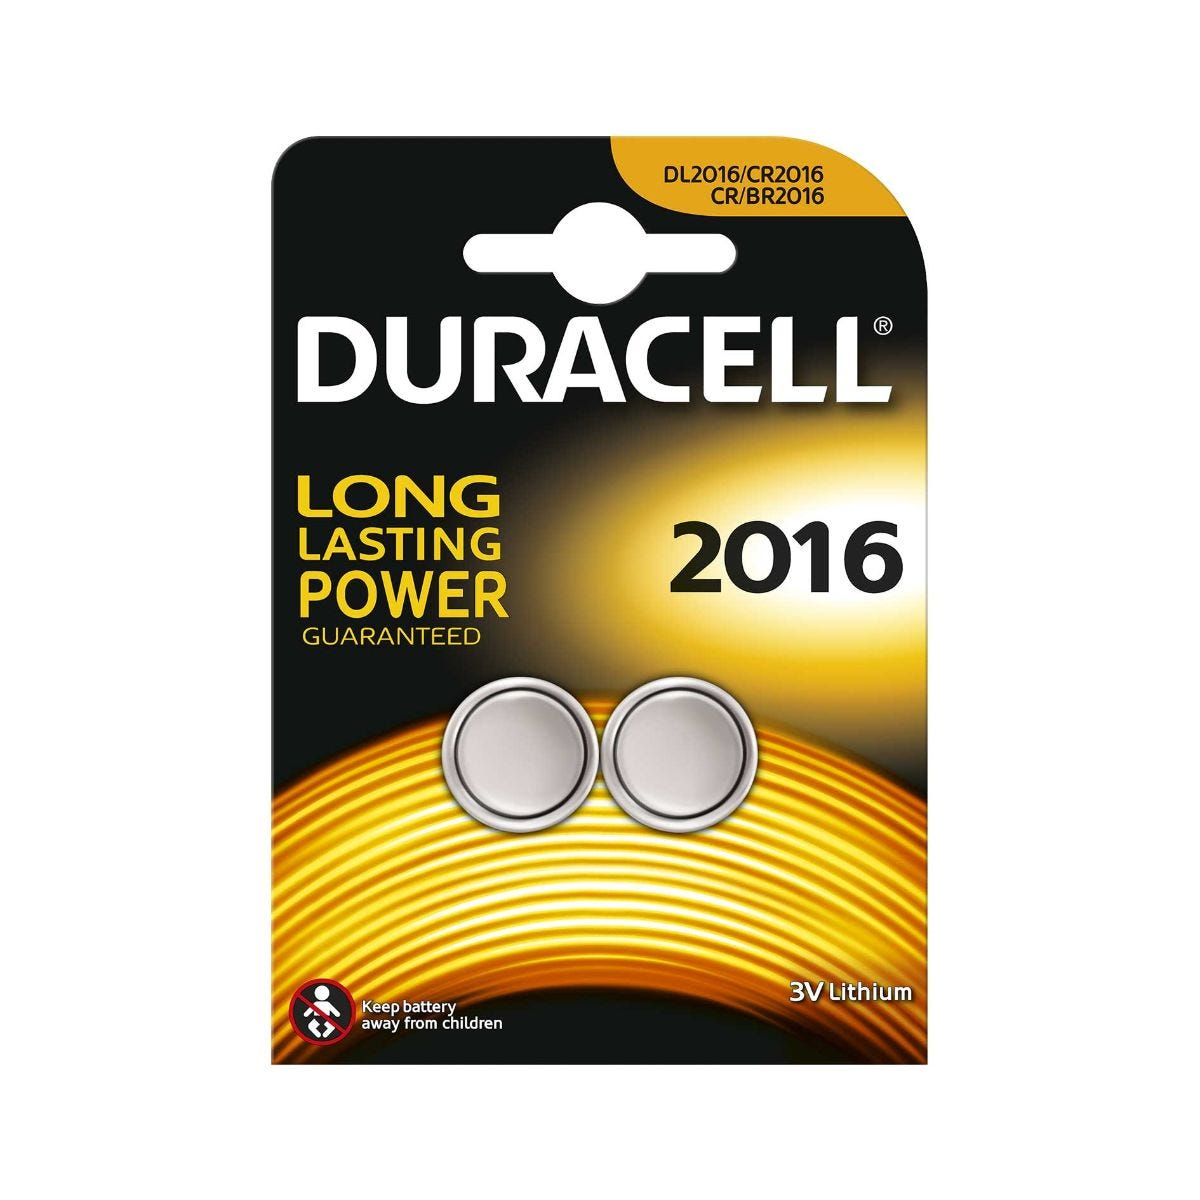 Image of Duracell Electronics DL2016 Pack of 2